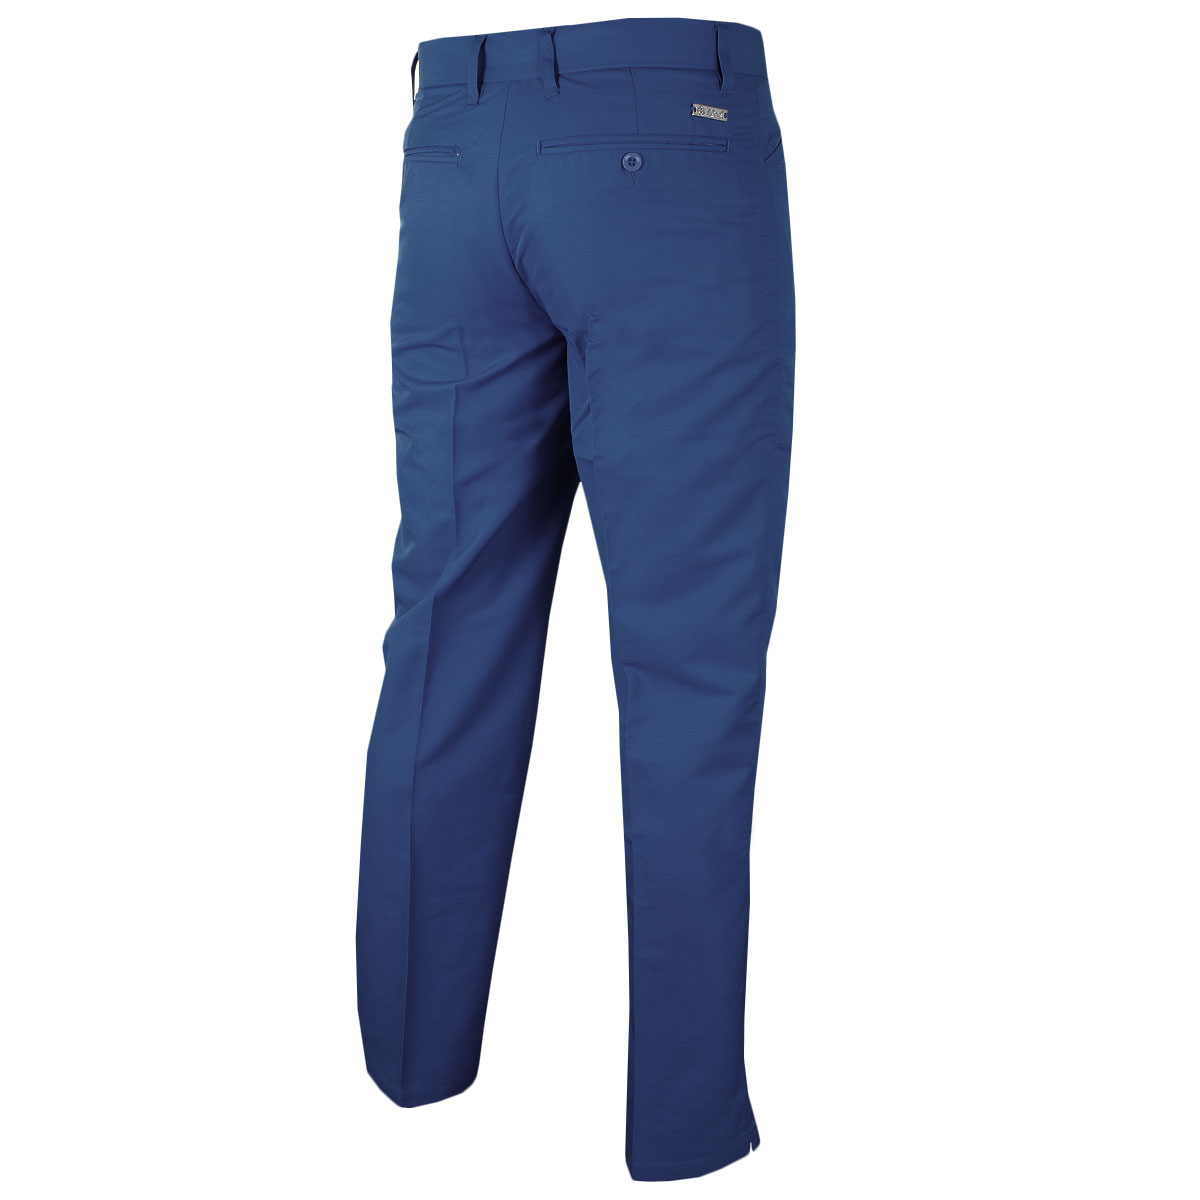 Island-Green-Mens-Tapered-Golf-Trousers-Performance-Pant-53-OFF-RRP thumbnail 6